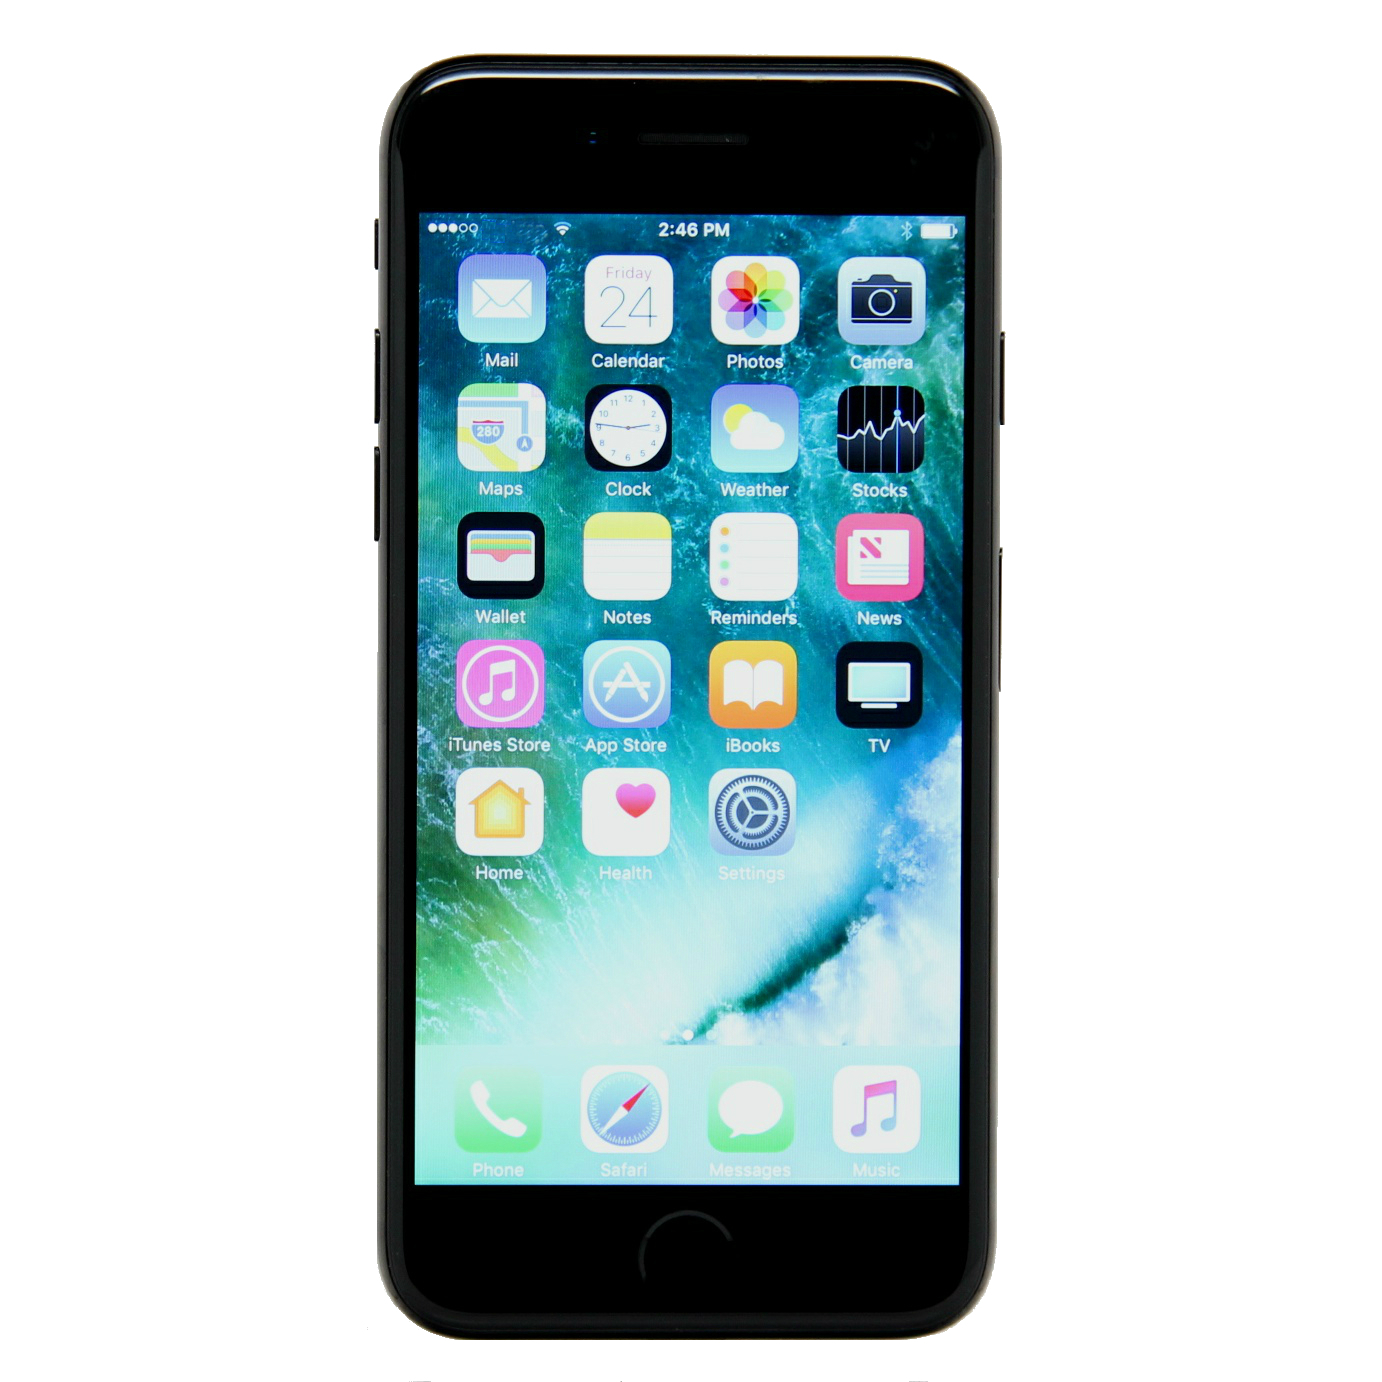 Apple iPhone 7 a1778 128GB Smartphone LTE GSM Unlocked (Refurbished)